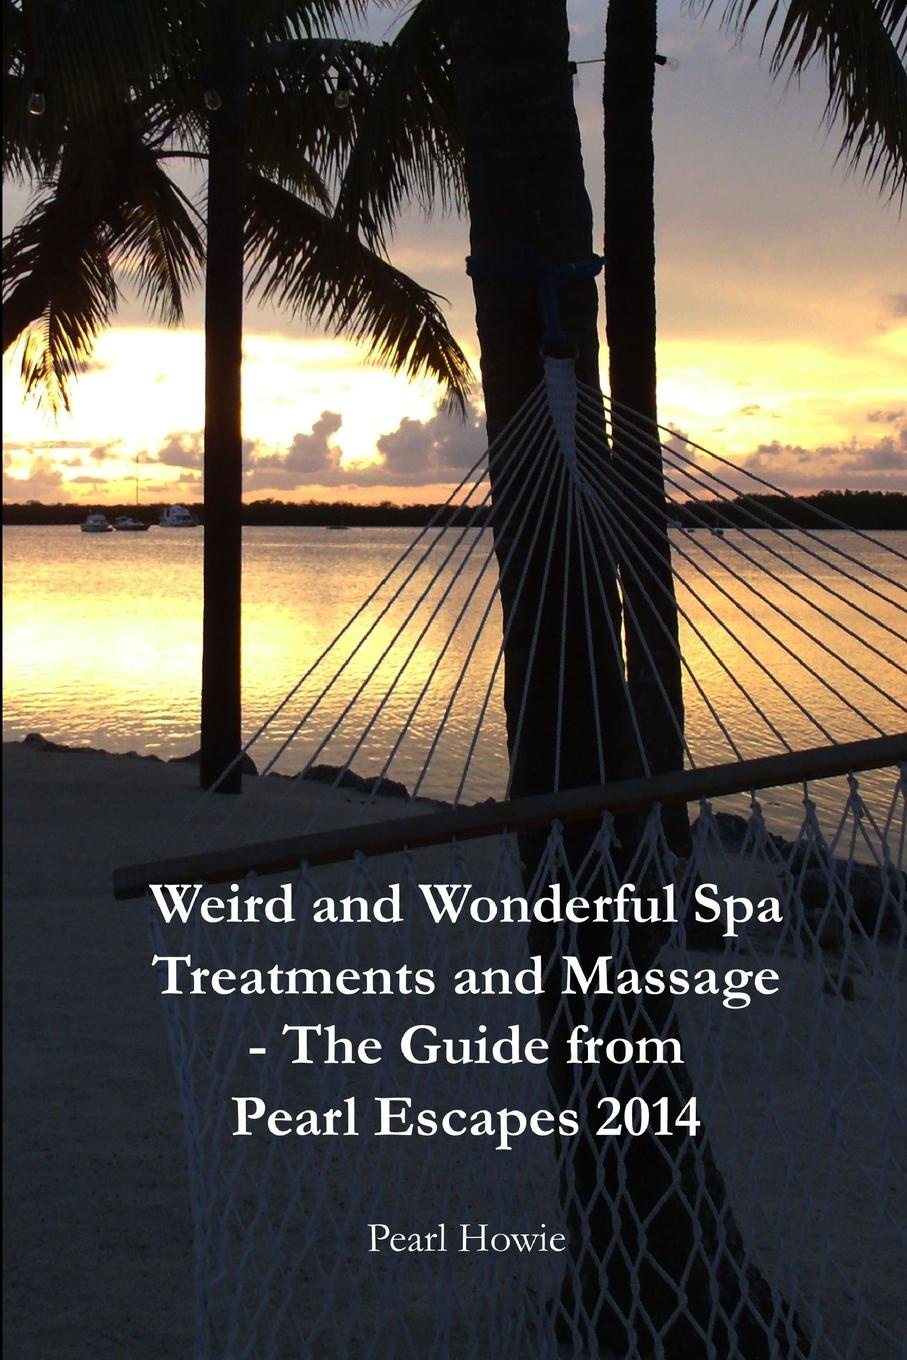 Pearl Howie Weird And Wonderful Spa Treatments And Massage - The Guide From Pearl Escapes 2014